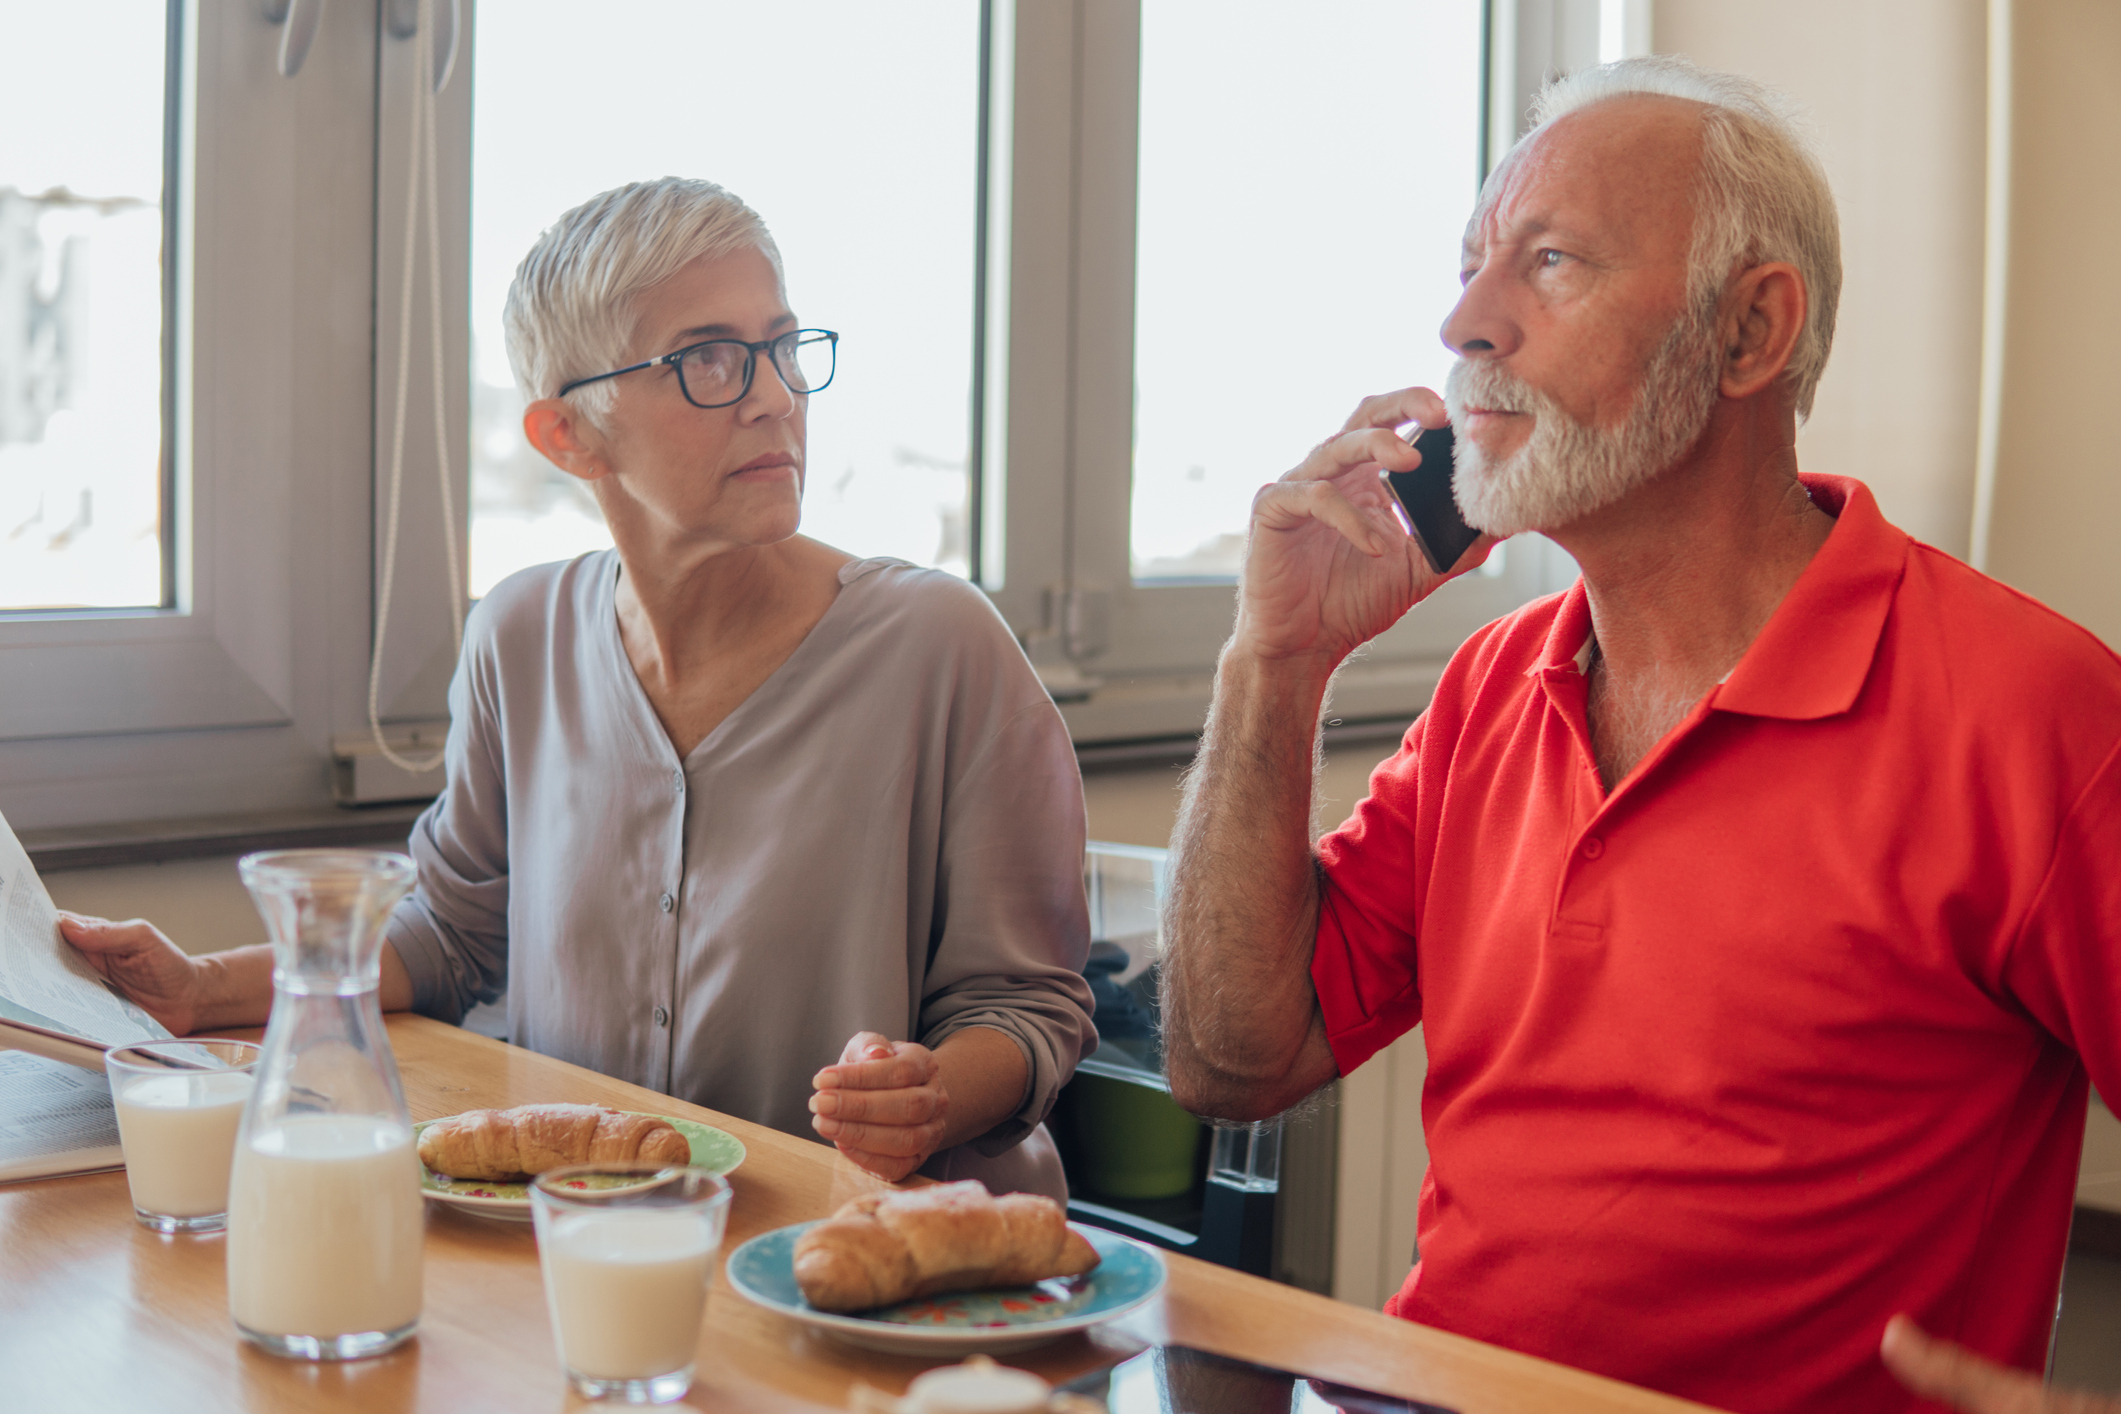 Stock photo of a man and a woman at a meal, with the man on his cell phone